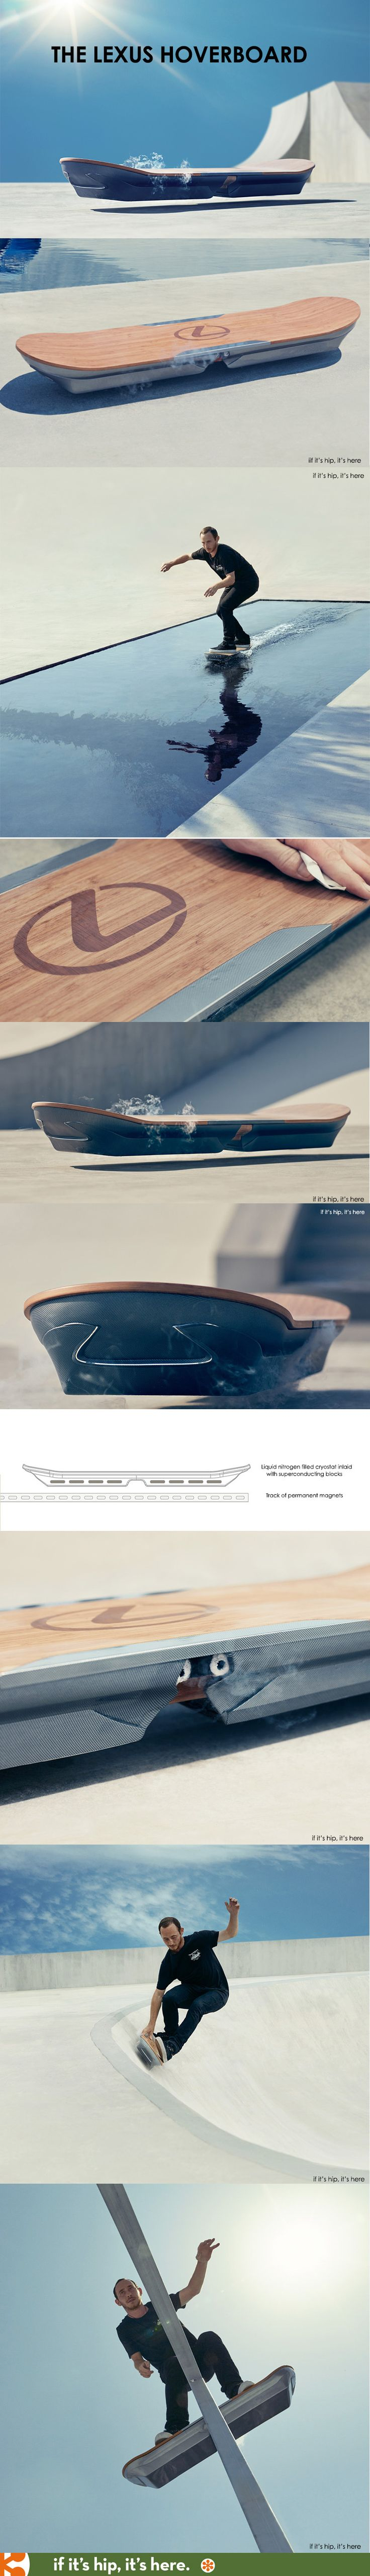 "Everything You Need To Know About The Lexus Hoverboard - The device uses magnetic levitation with liquid nitrogen-cooled super-conductors and permanent magnets to ""give the hoverboard frictionless movement of a kind that had been thought impossible"" according to Lexus - the prototype will debut Oct. 21.2015 - however magnets underneath the surface of the floor are needed for the board to work #cooltech...x"